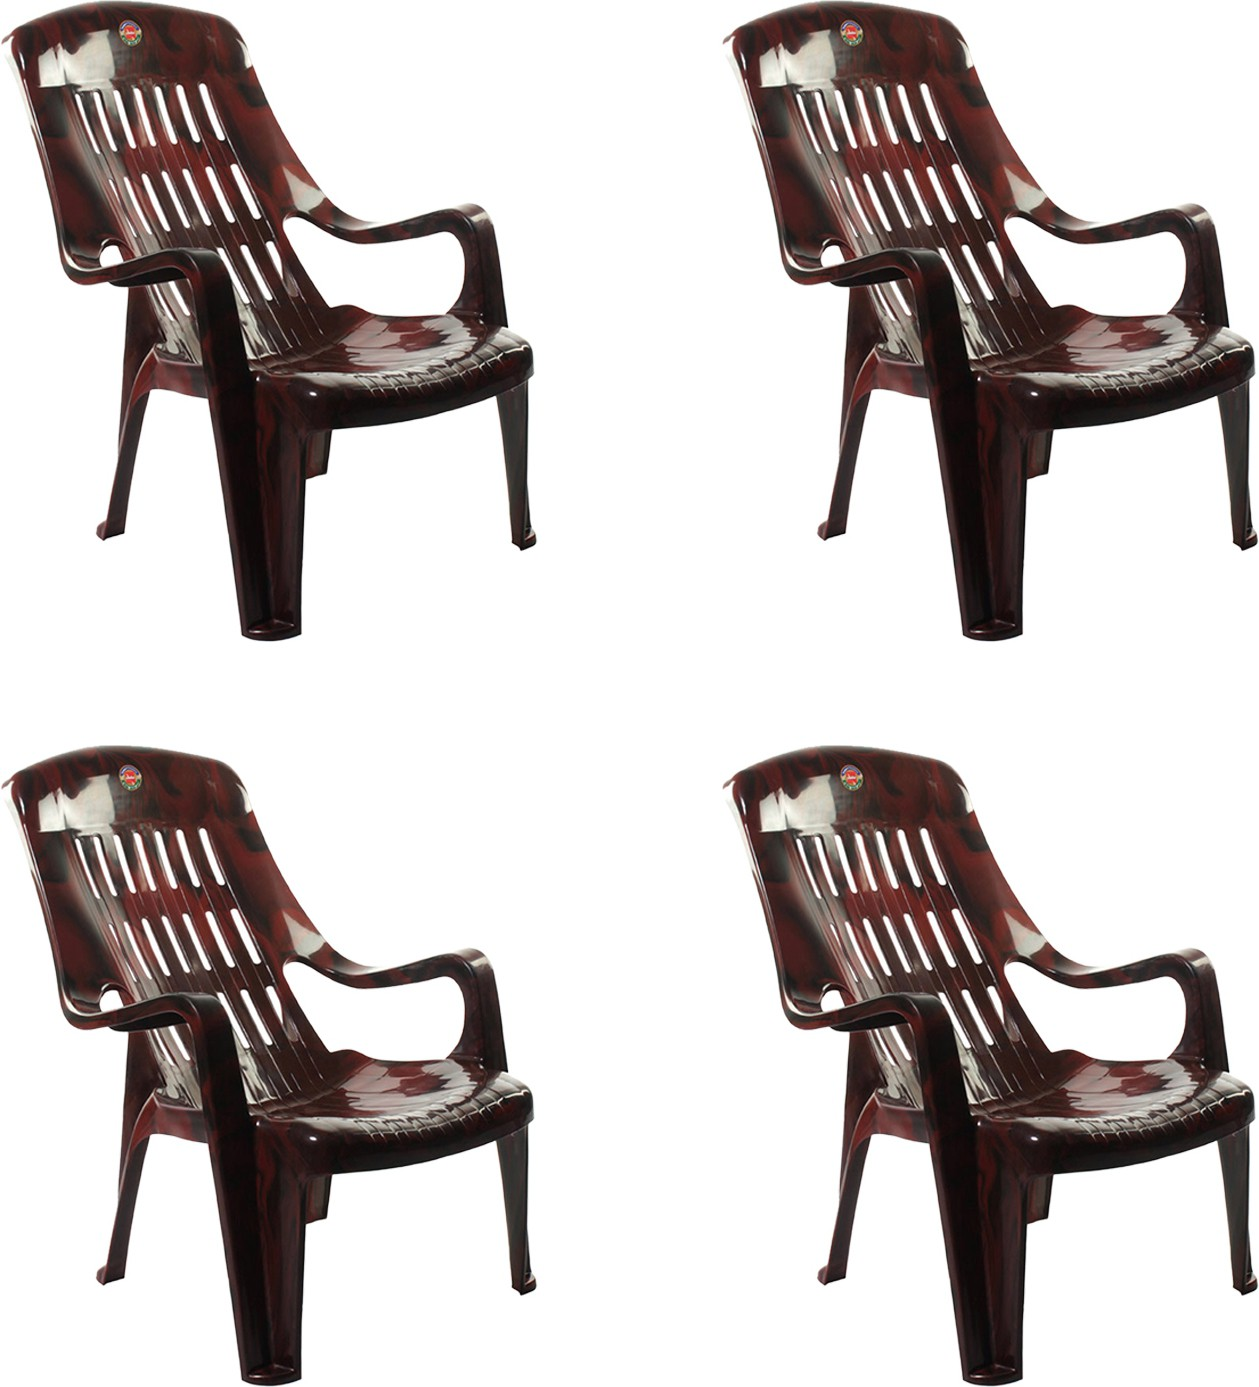 View Cello Furniture Plastic Living Room Chair(Finish Color - Rosewood) Furniture (Cello Furniture)